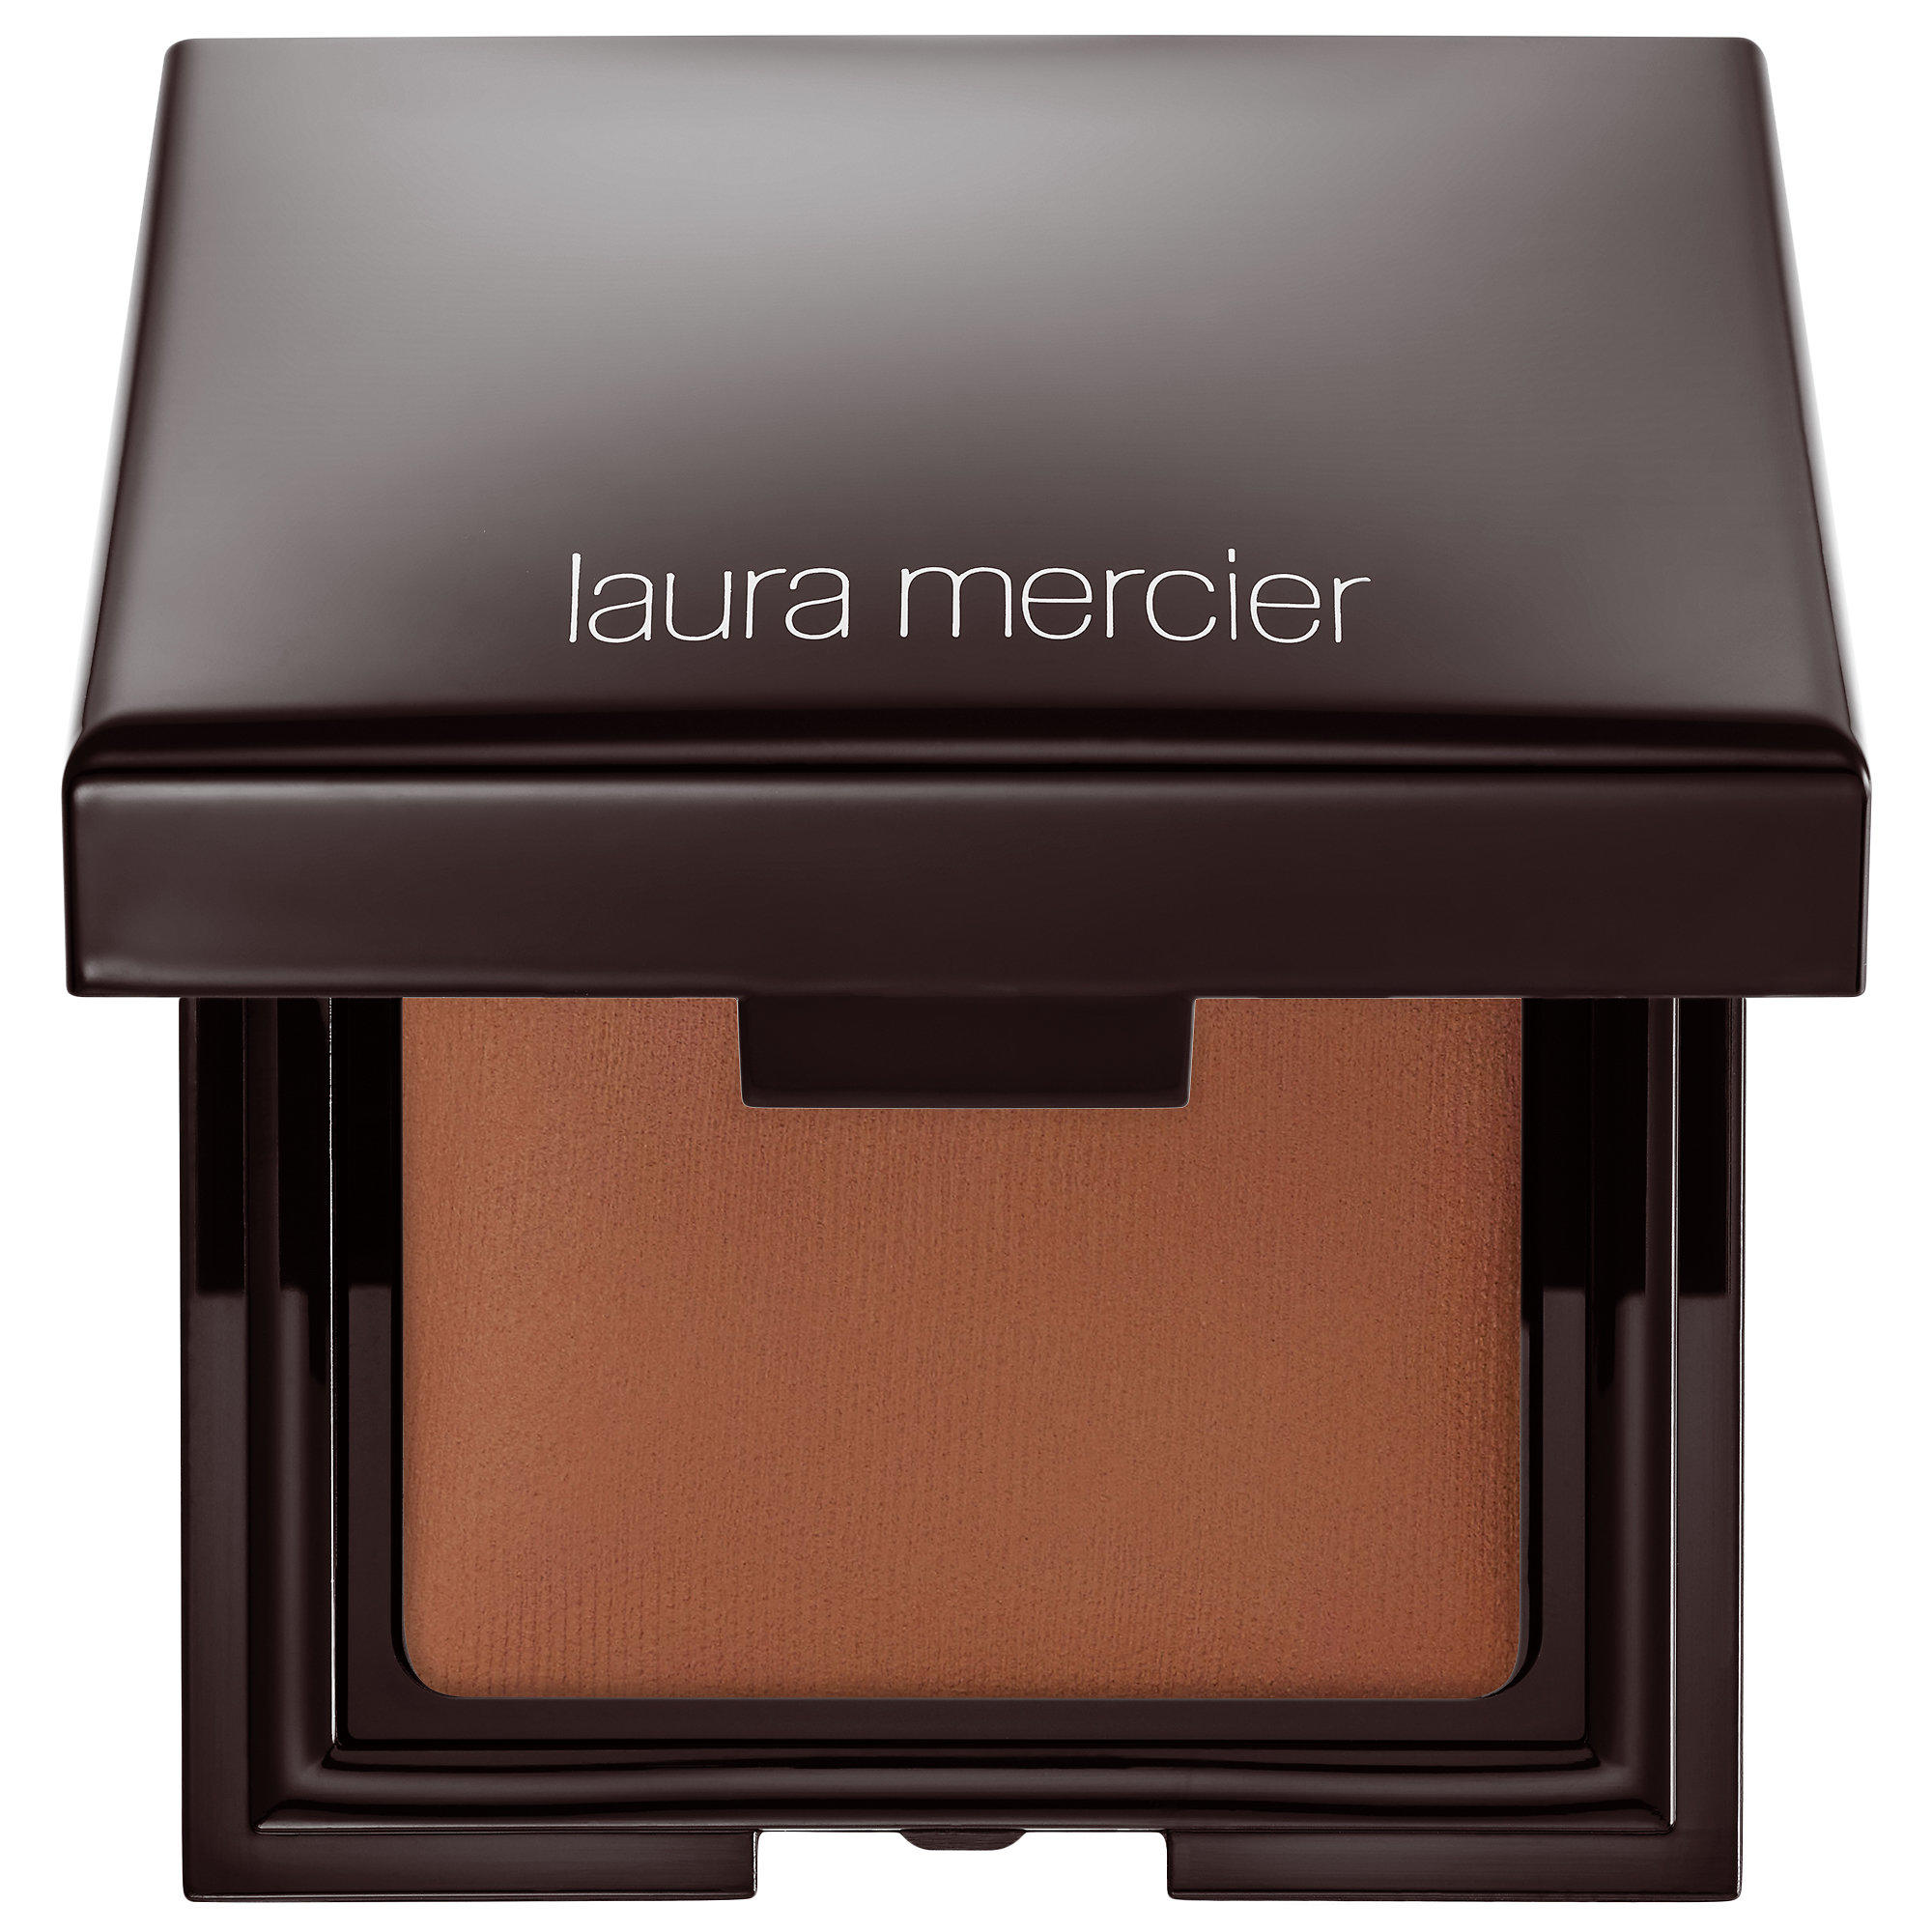 Laura Mercier Candleglow Sheer Perfecting Powder Medium Deep 5